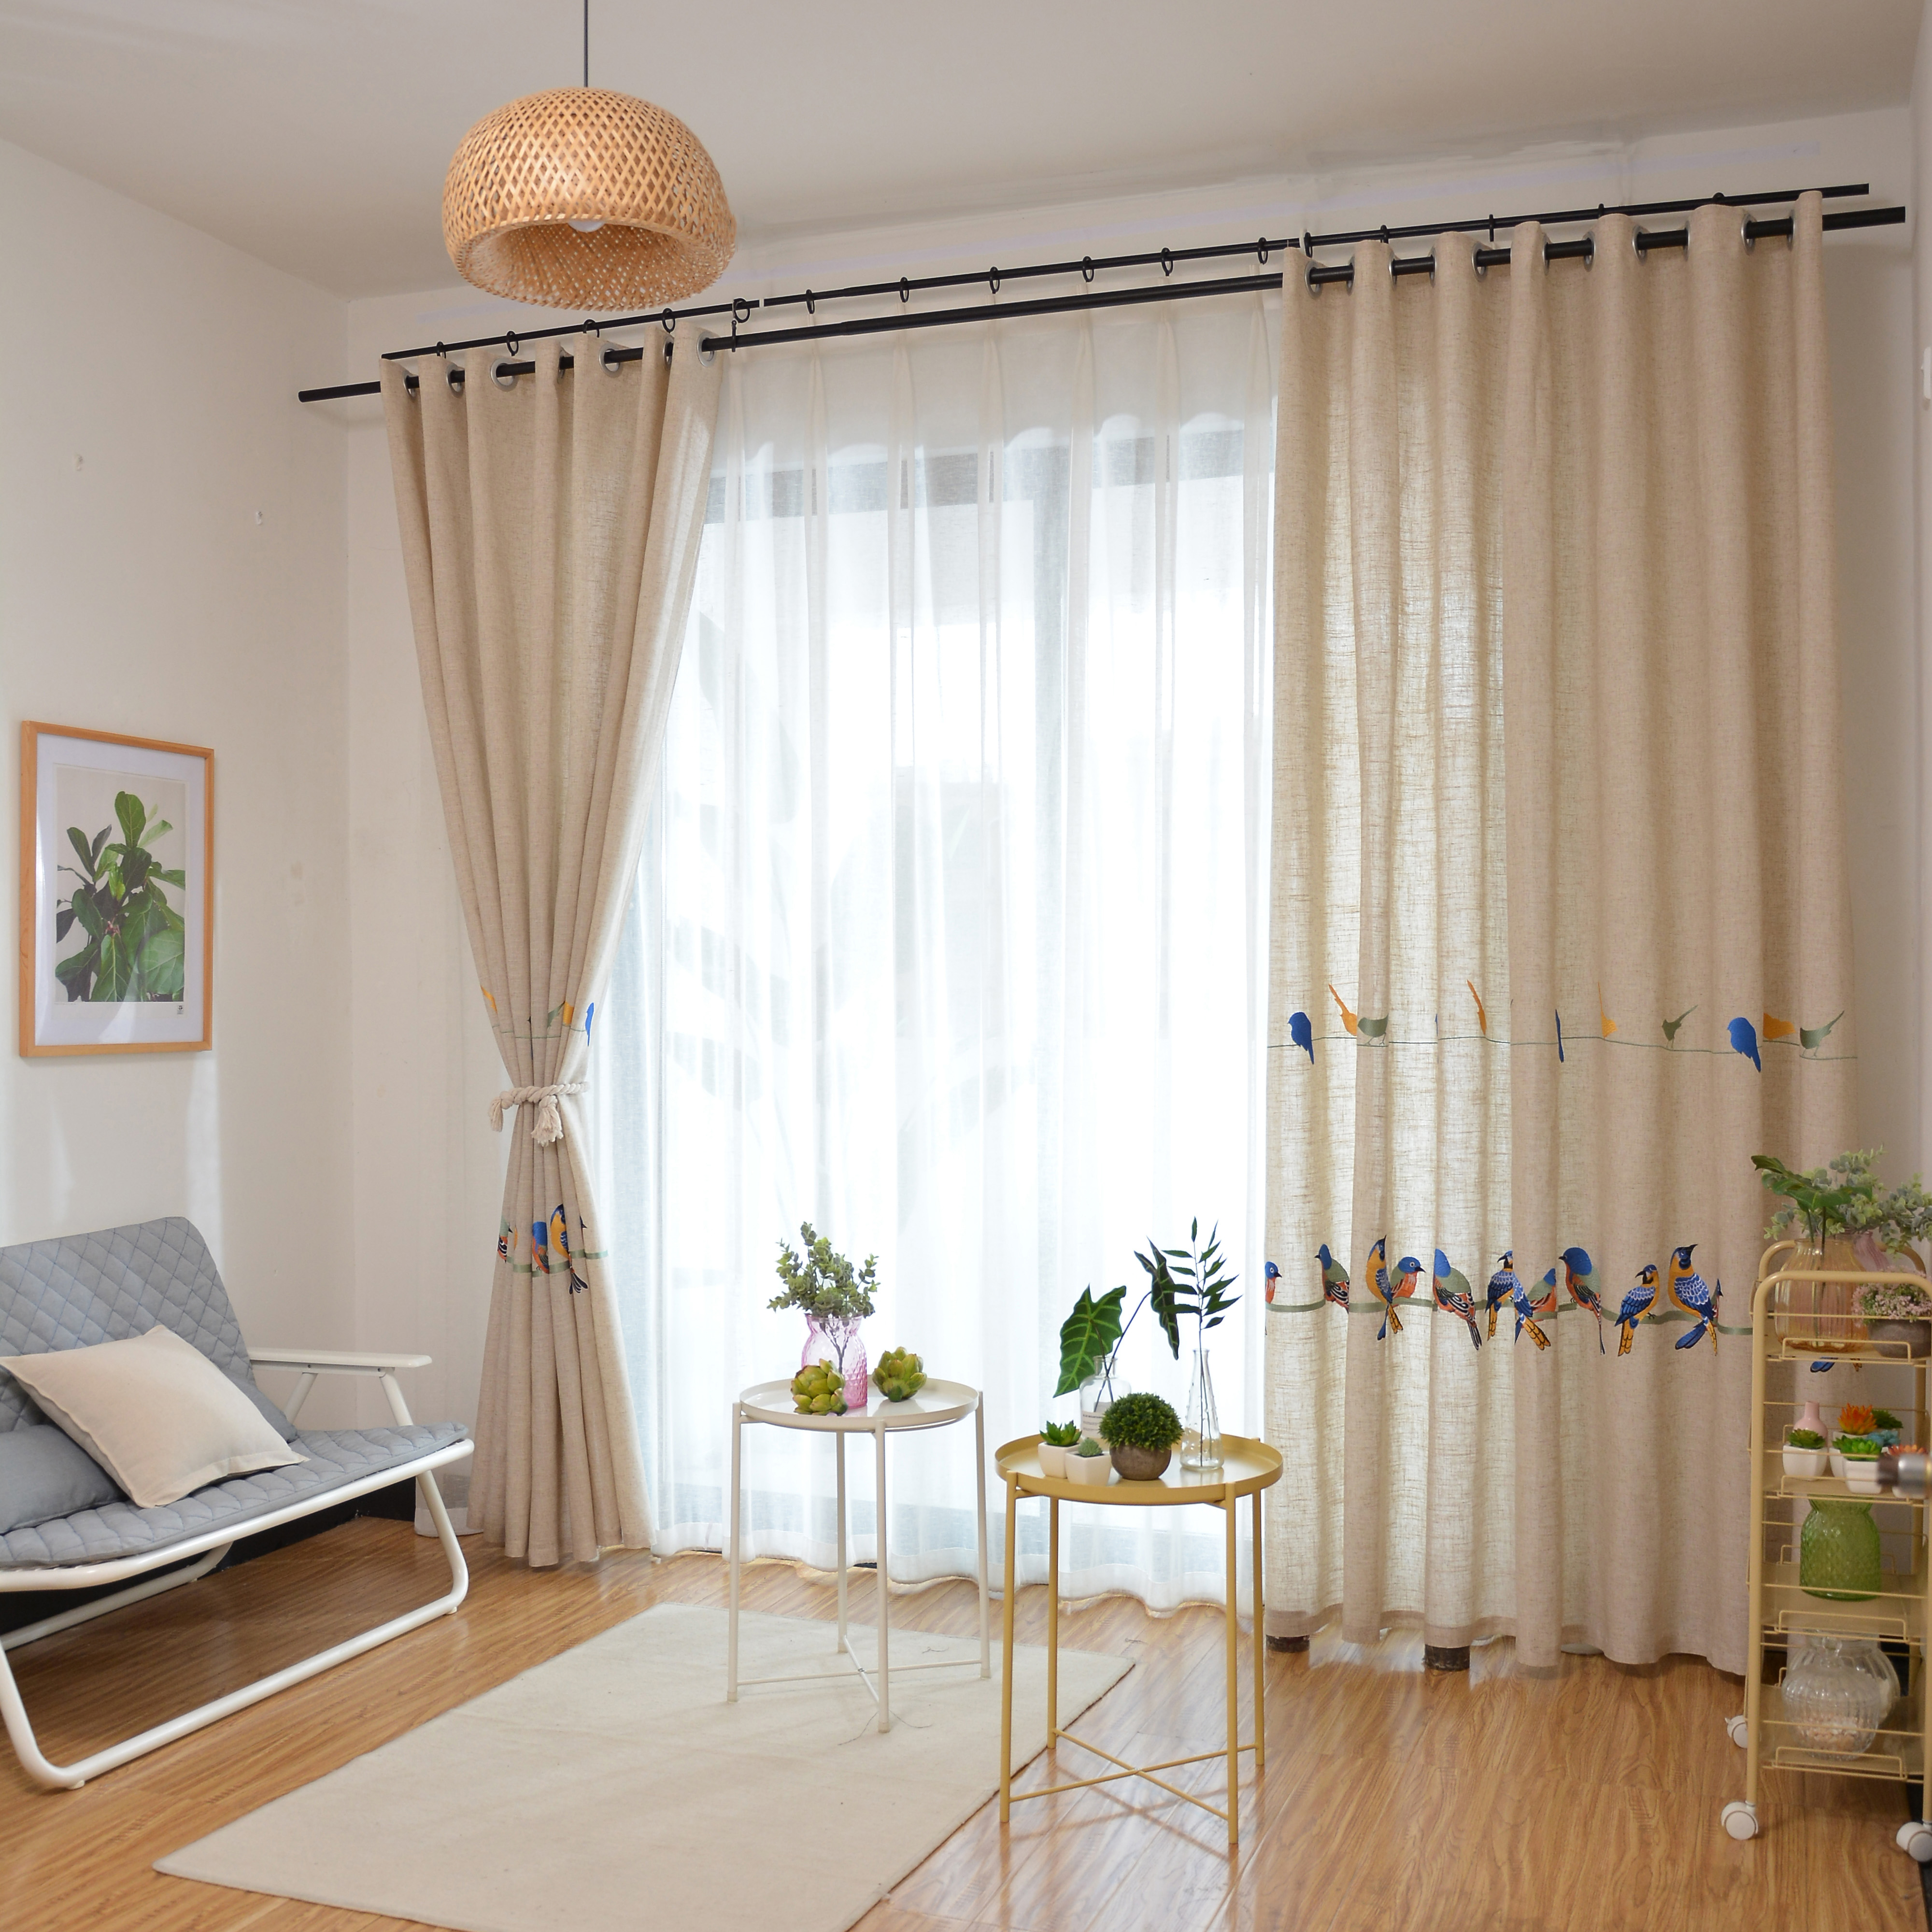 Image 4 - Cotton Linen Curtains for Living Room Bedroom Pastoral Curtain  with Embroidery Birds White Tulle Sheer Curtain Window  TreatmentCurtains